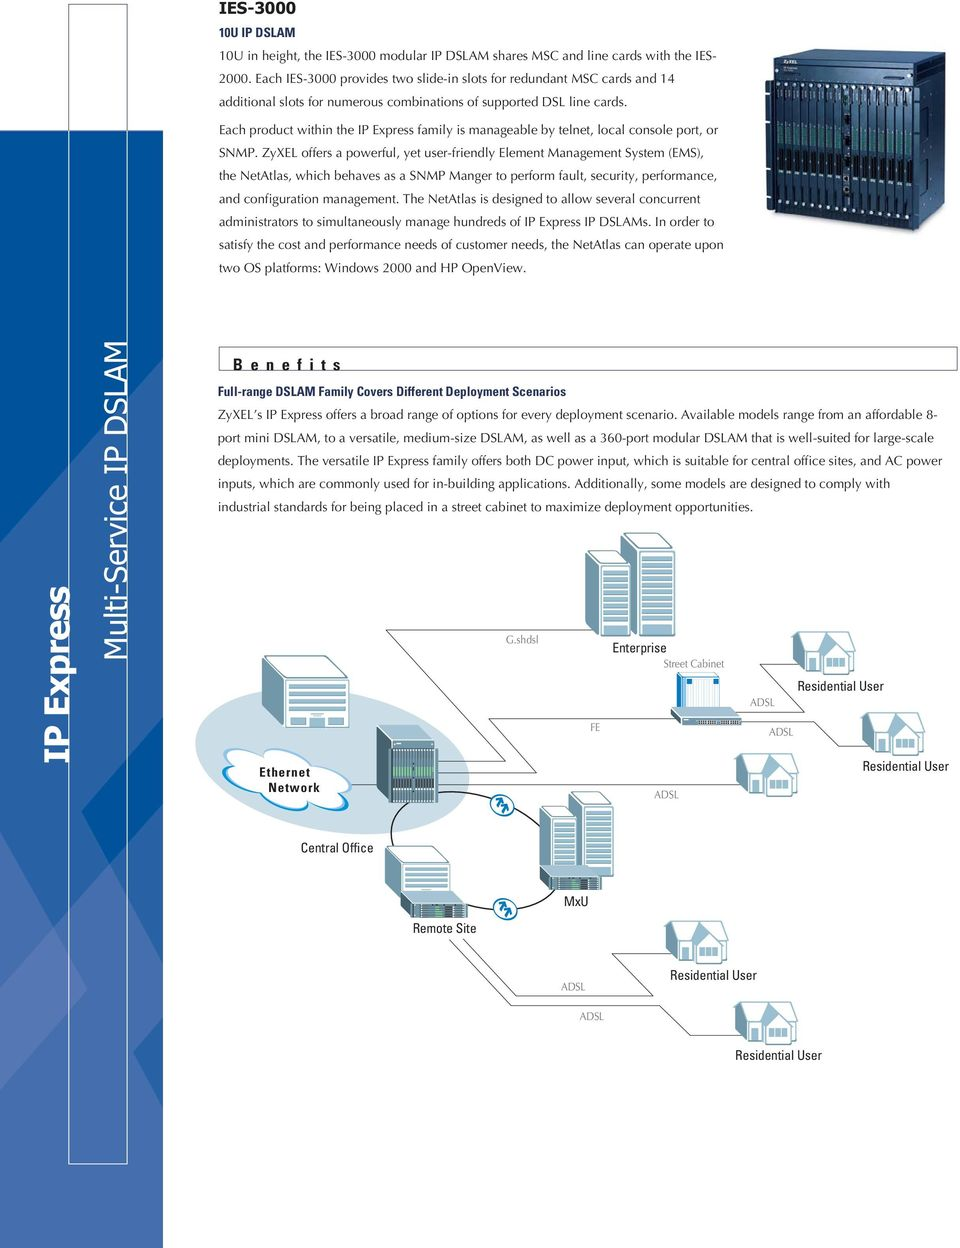 Each product within the IP Express family is manageable by telnet, local console port, or SNMP.